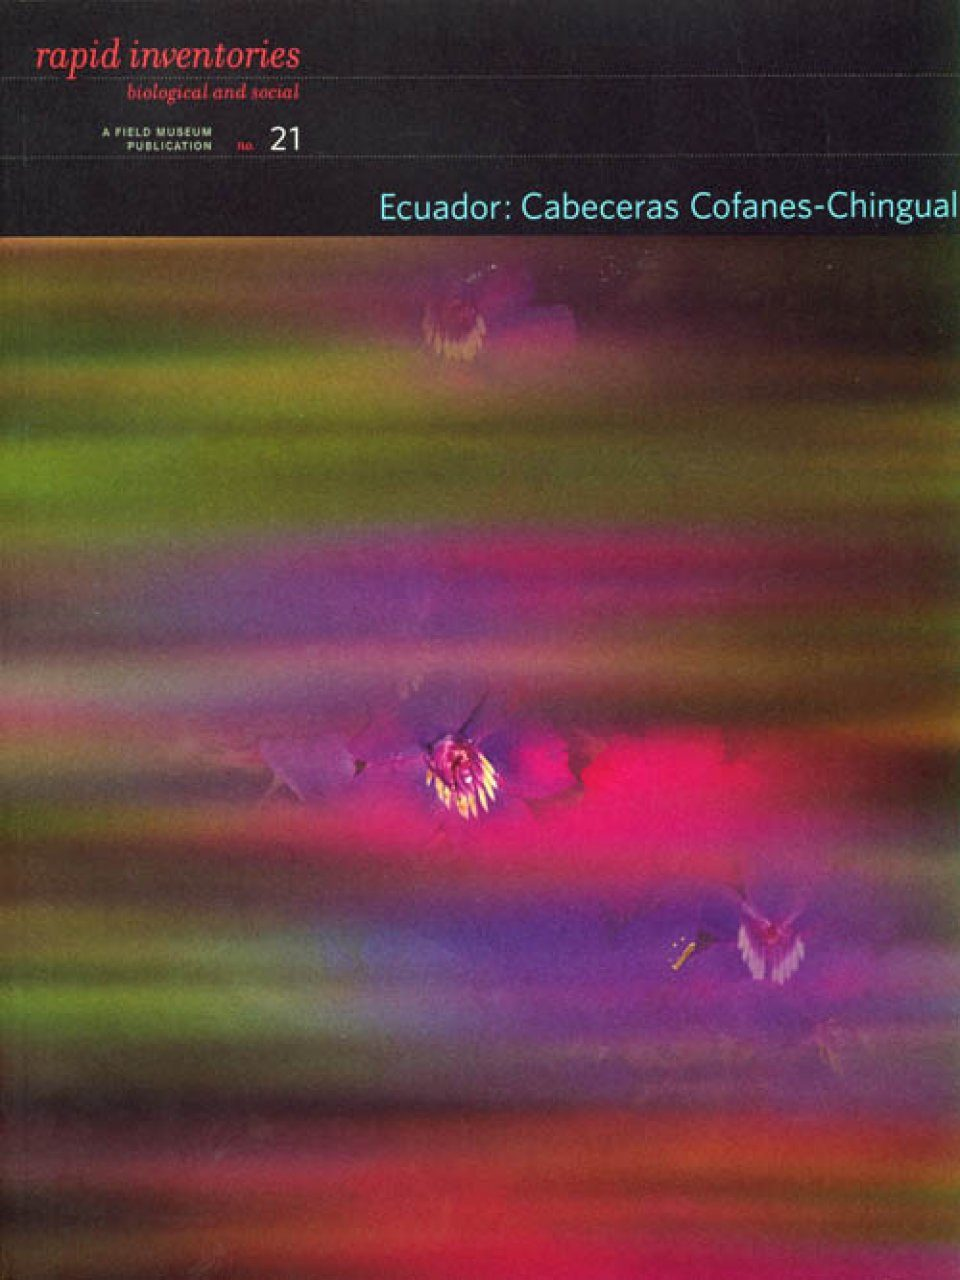 Rapid Biological Inventories, Volume 21: Ecuador: Cabeceras Cofanes-Chingual [English / Spanish]